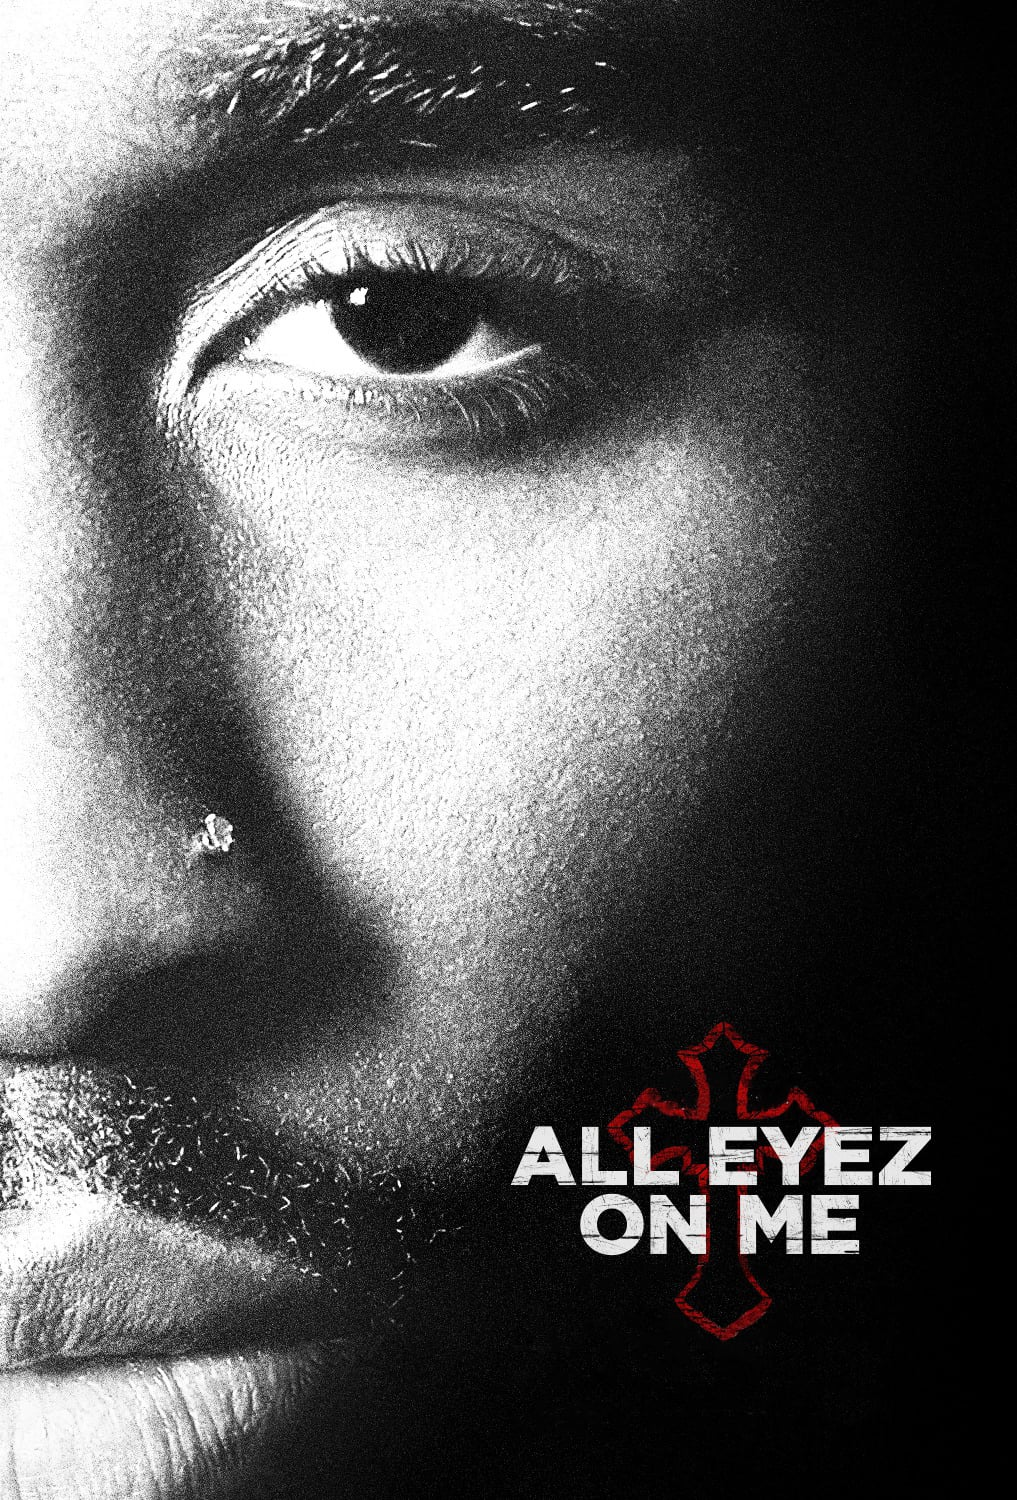 2Pac - All Eyez On Me - YouTube